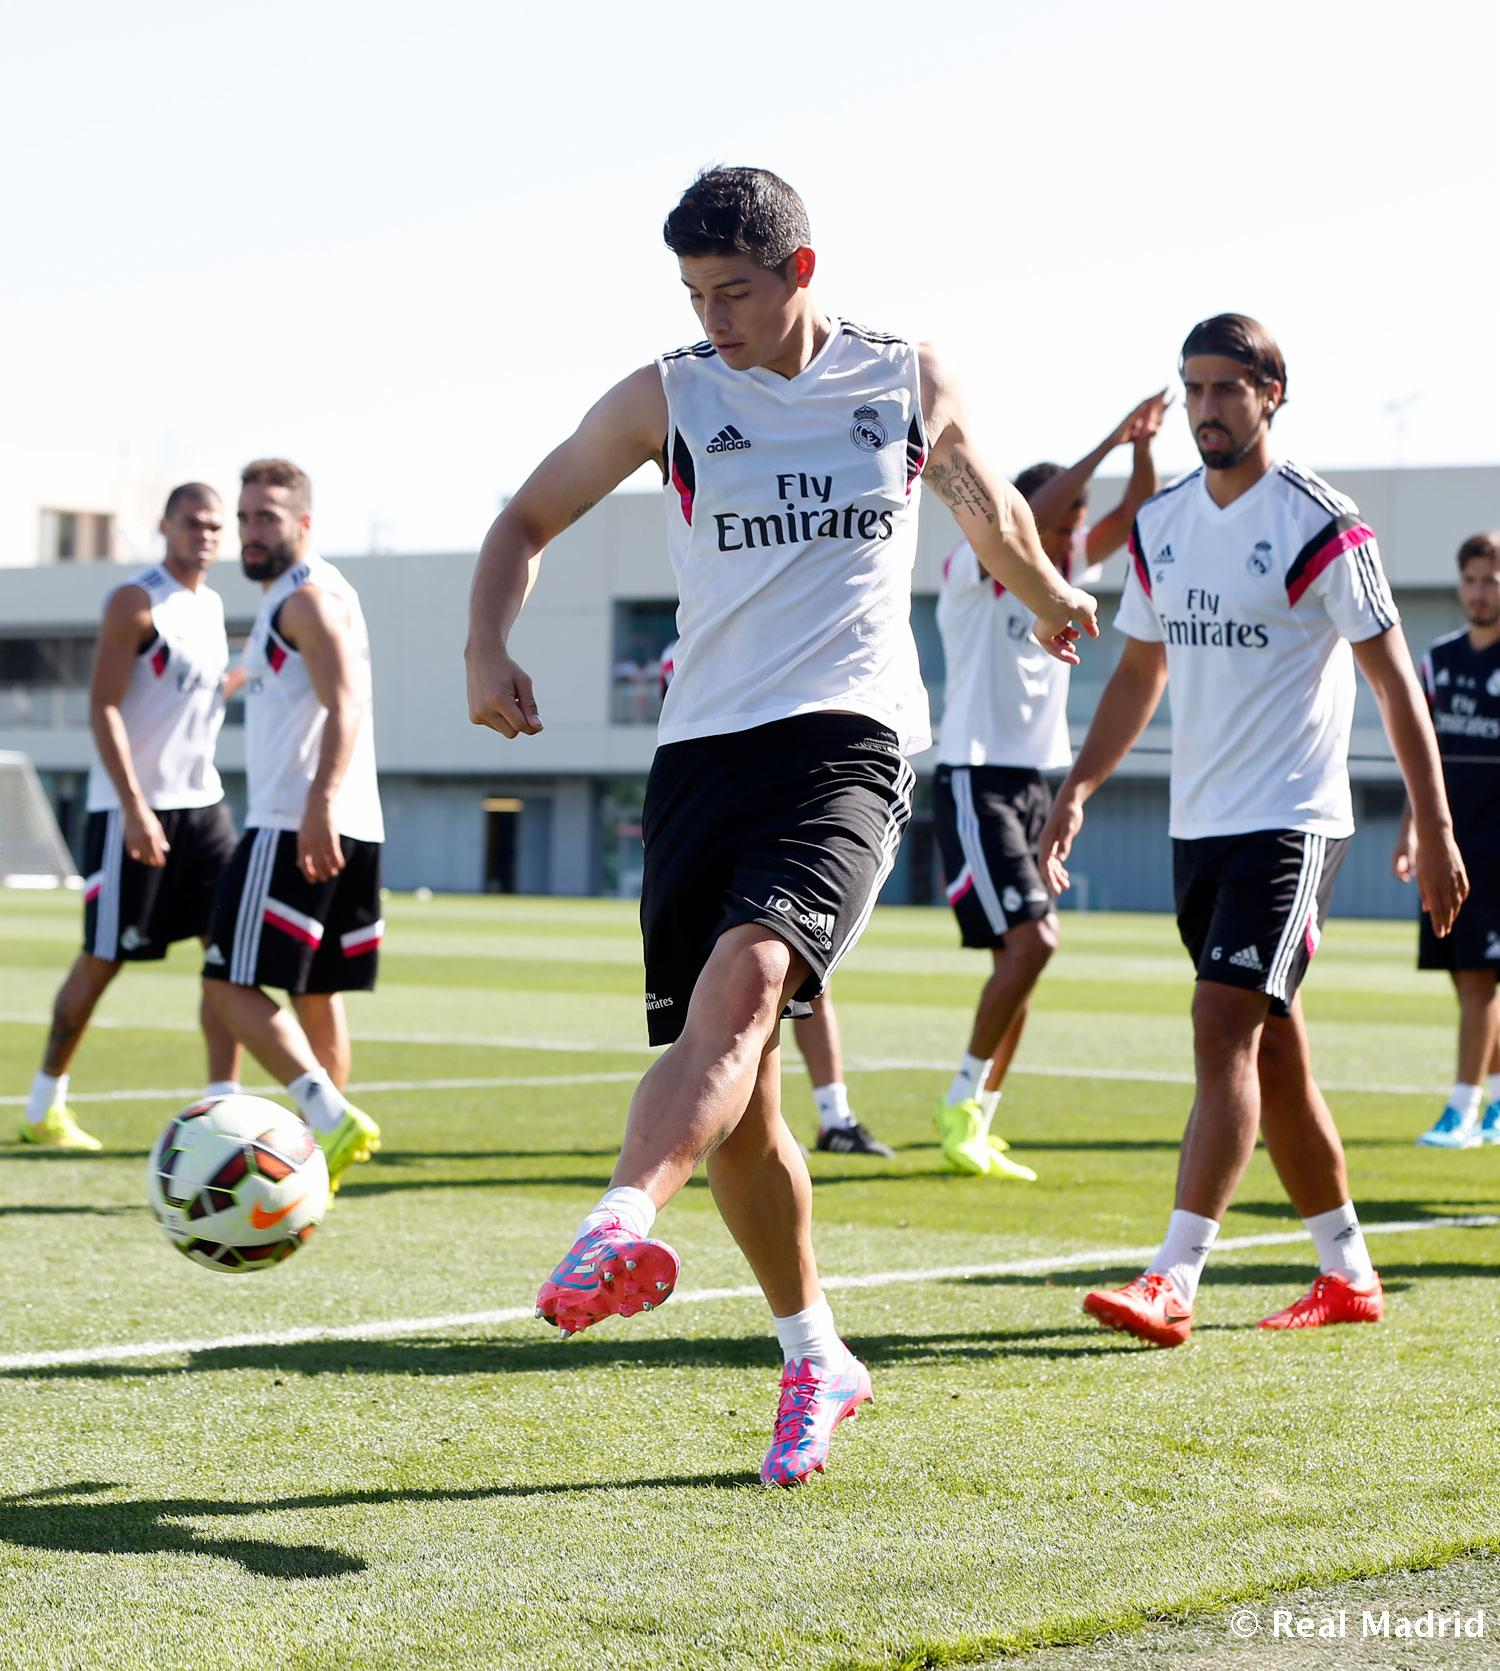 Real Madrid - Entrenamiento del Real Madrid - 28-08-2014